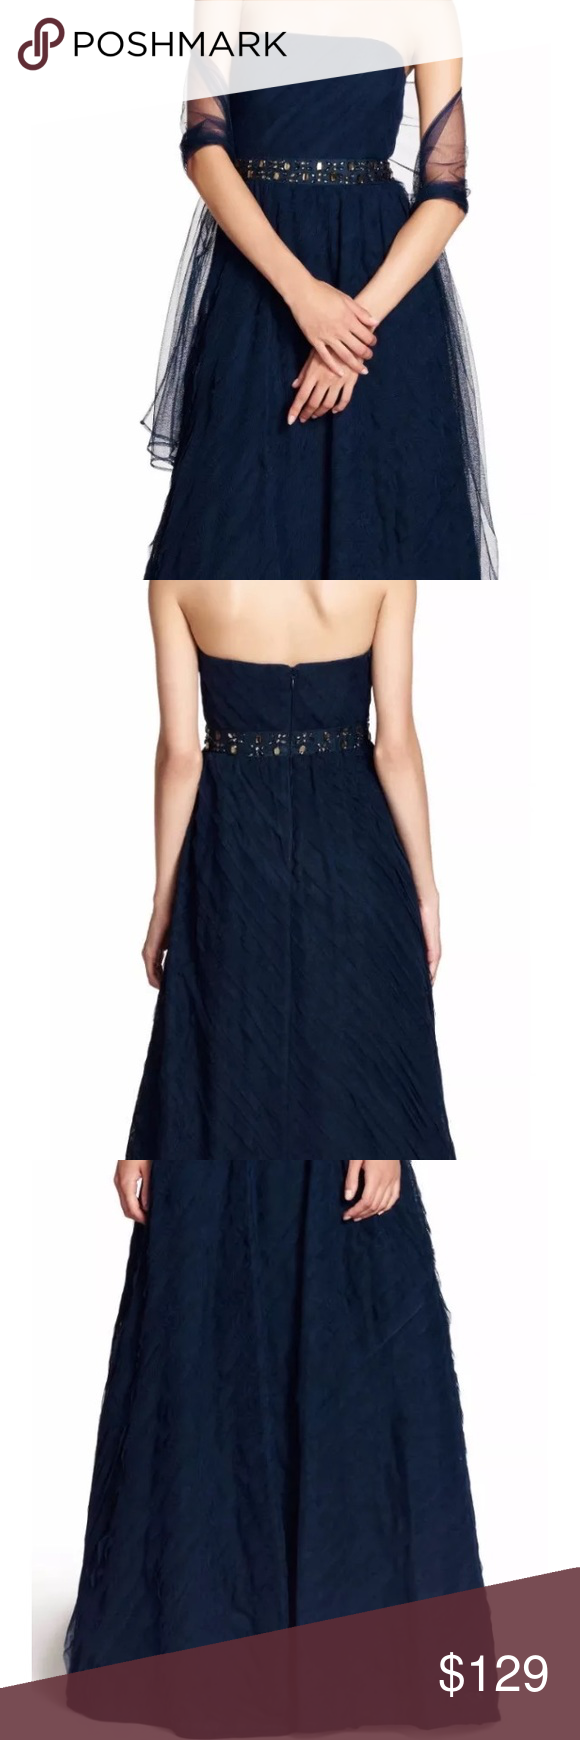 Adrianna papell navy blue jeweled waist gown nwt adrianna papell